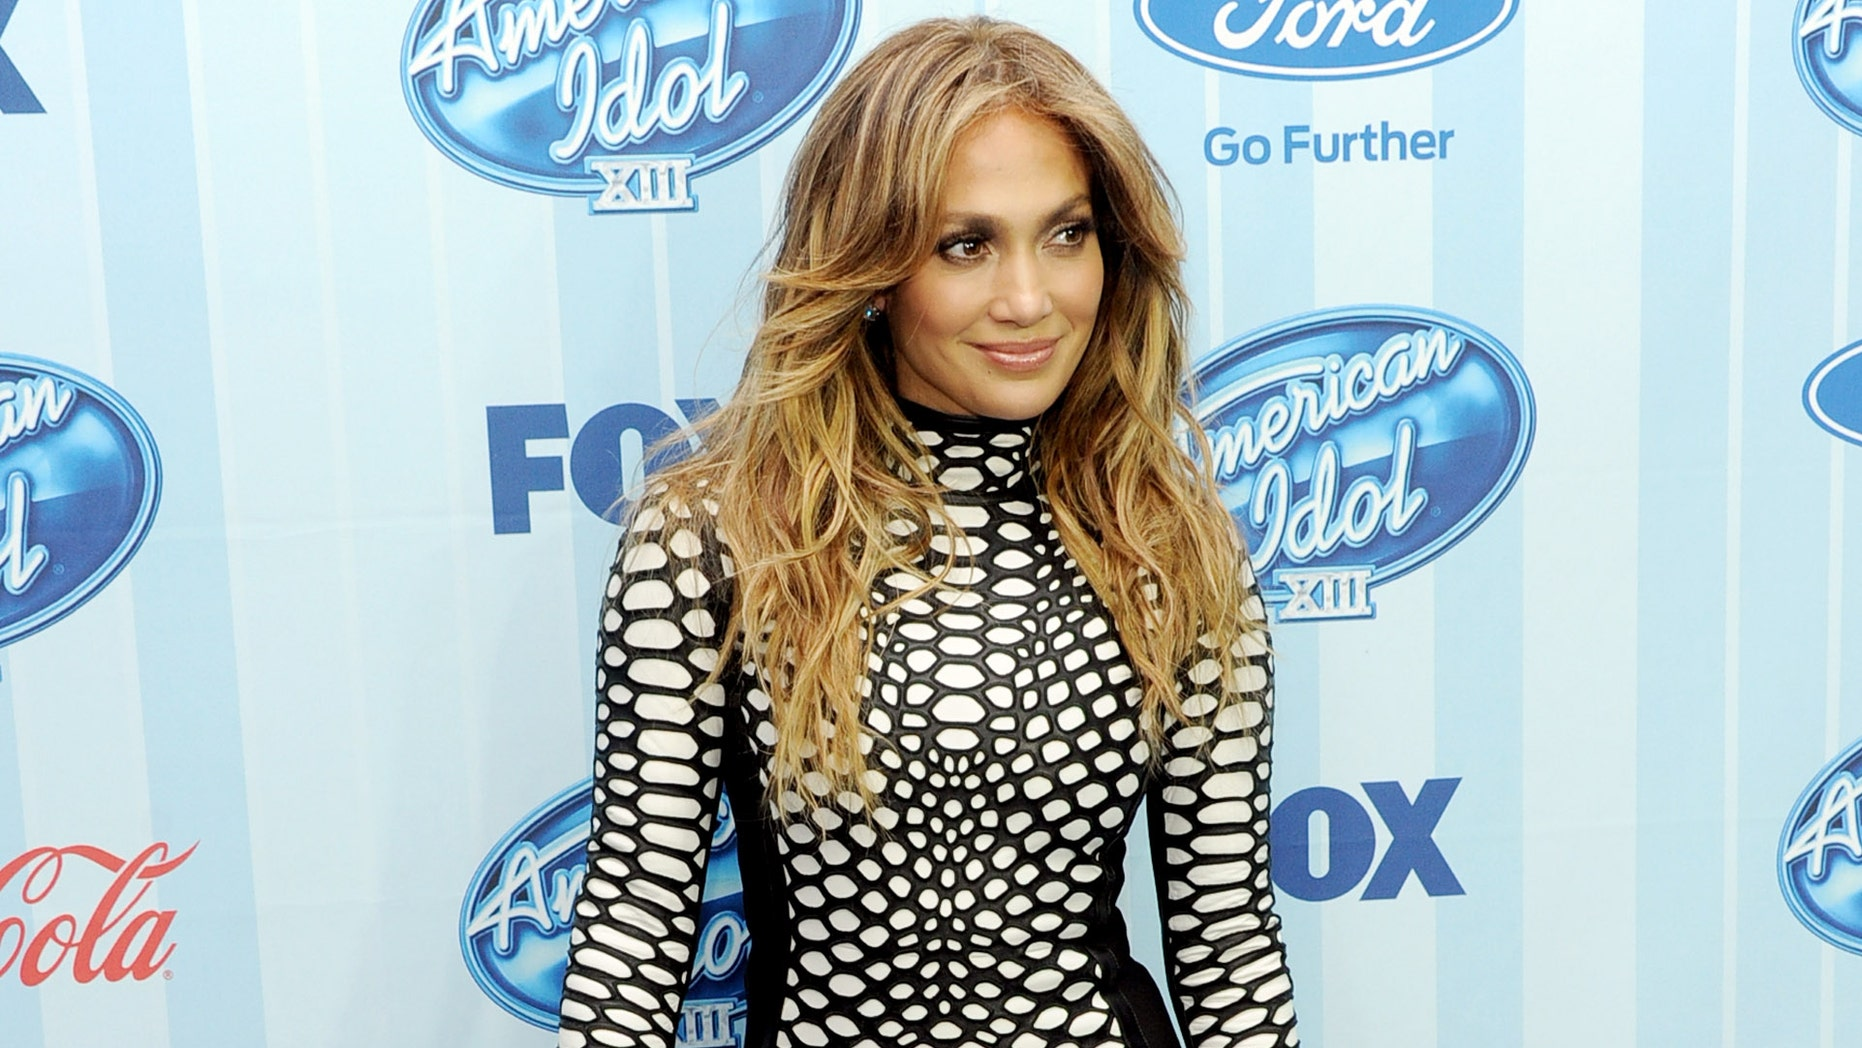 """LOS ANGELES, CA - JANUARY 14:  Singer Jennifer Lopez arrives at the premiere of Fox's """"American Idol Xlll"""" at UCLA's Royce Hall on January 14, 2014 in Los Angeles, California.  (Photo by Kevin Winter/Getty Images)"""